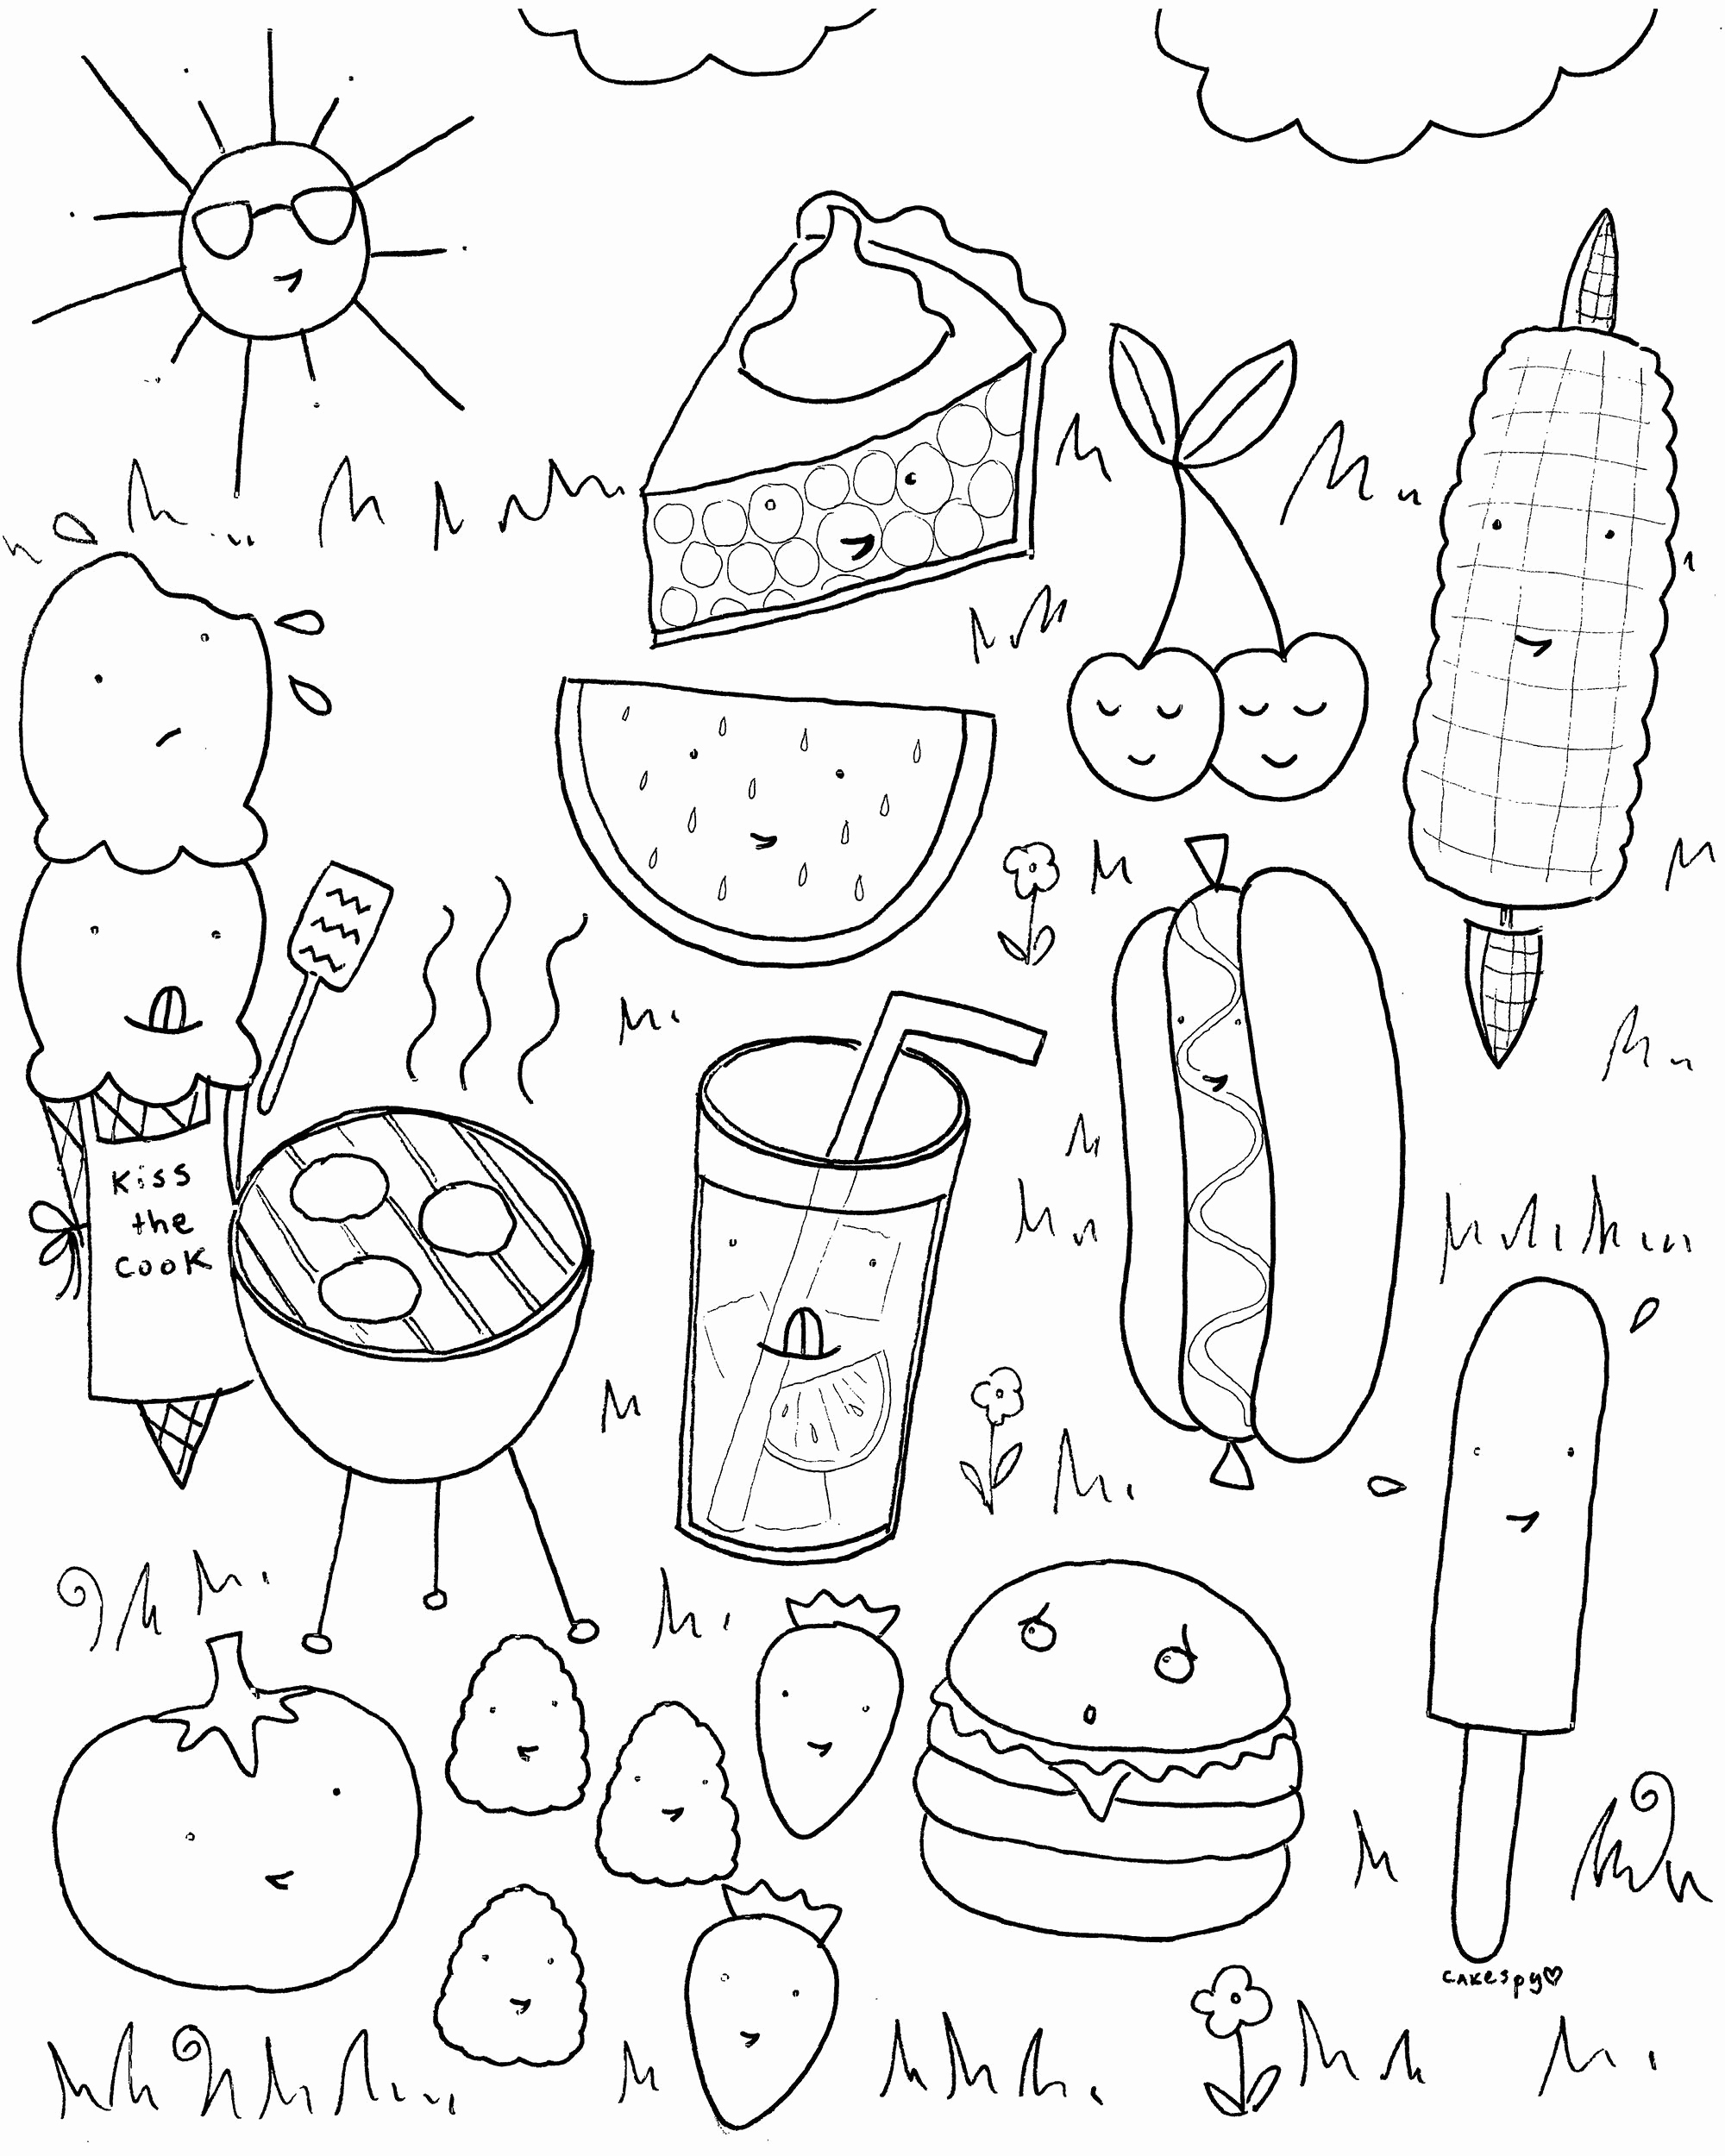 coloring pages of food Collection-Food Coloring Pages for Kindergarten Lovely Summer Activities Coloring Pages Summer Printable Coloring Pages 6-k